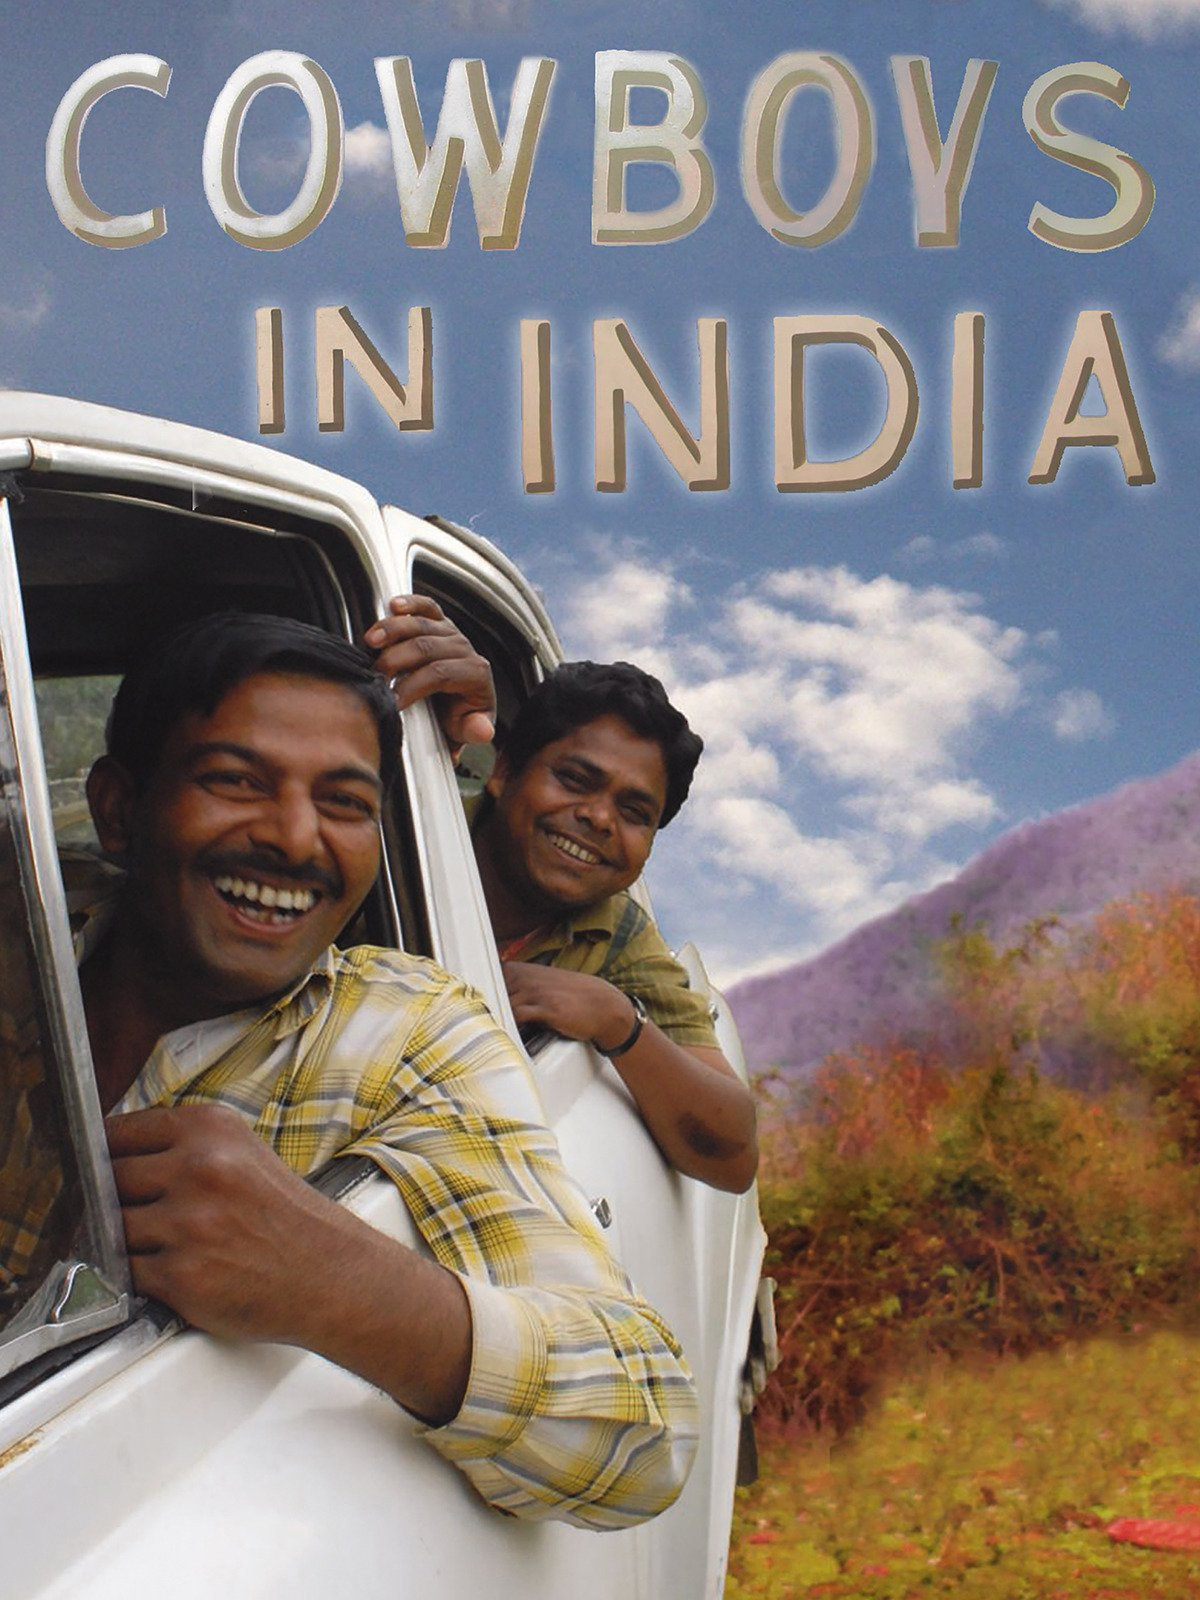 Cowboys in India